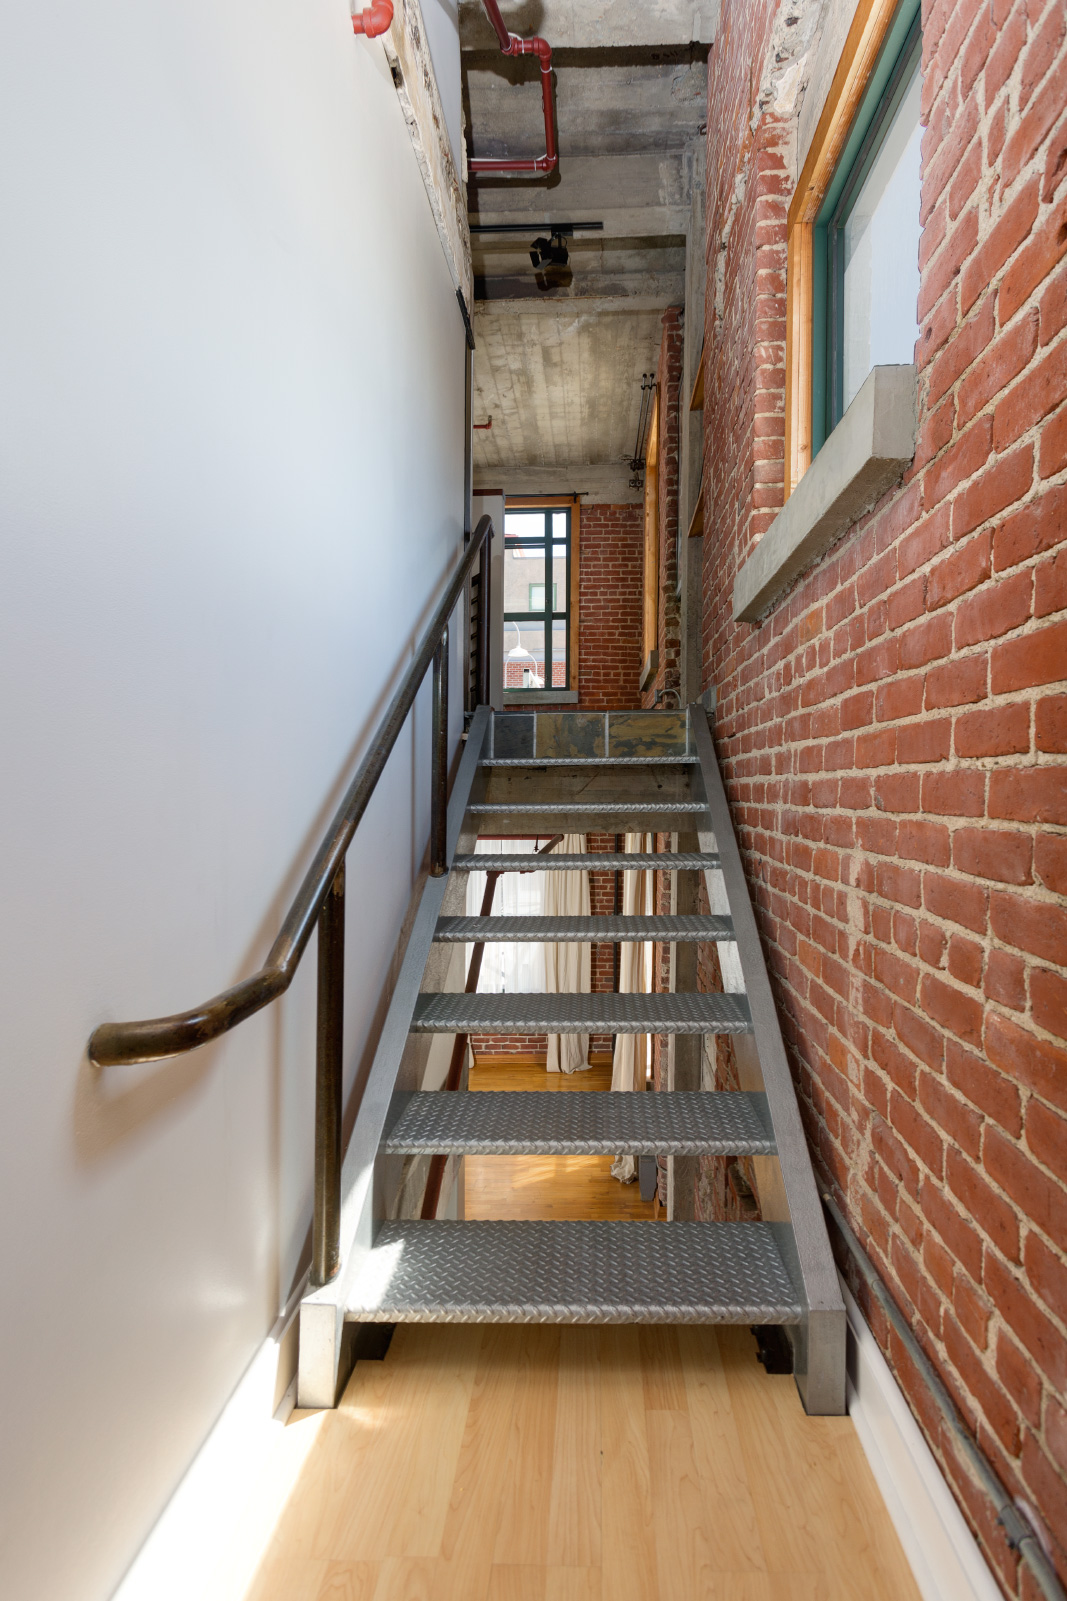 stairs-to-living-area_9712731350_o.jpg